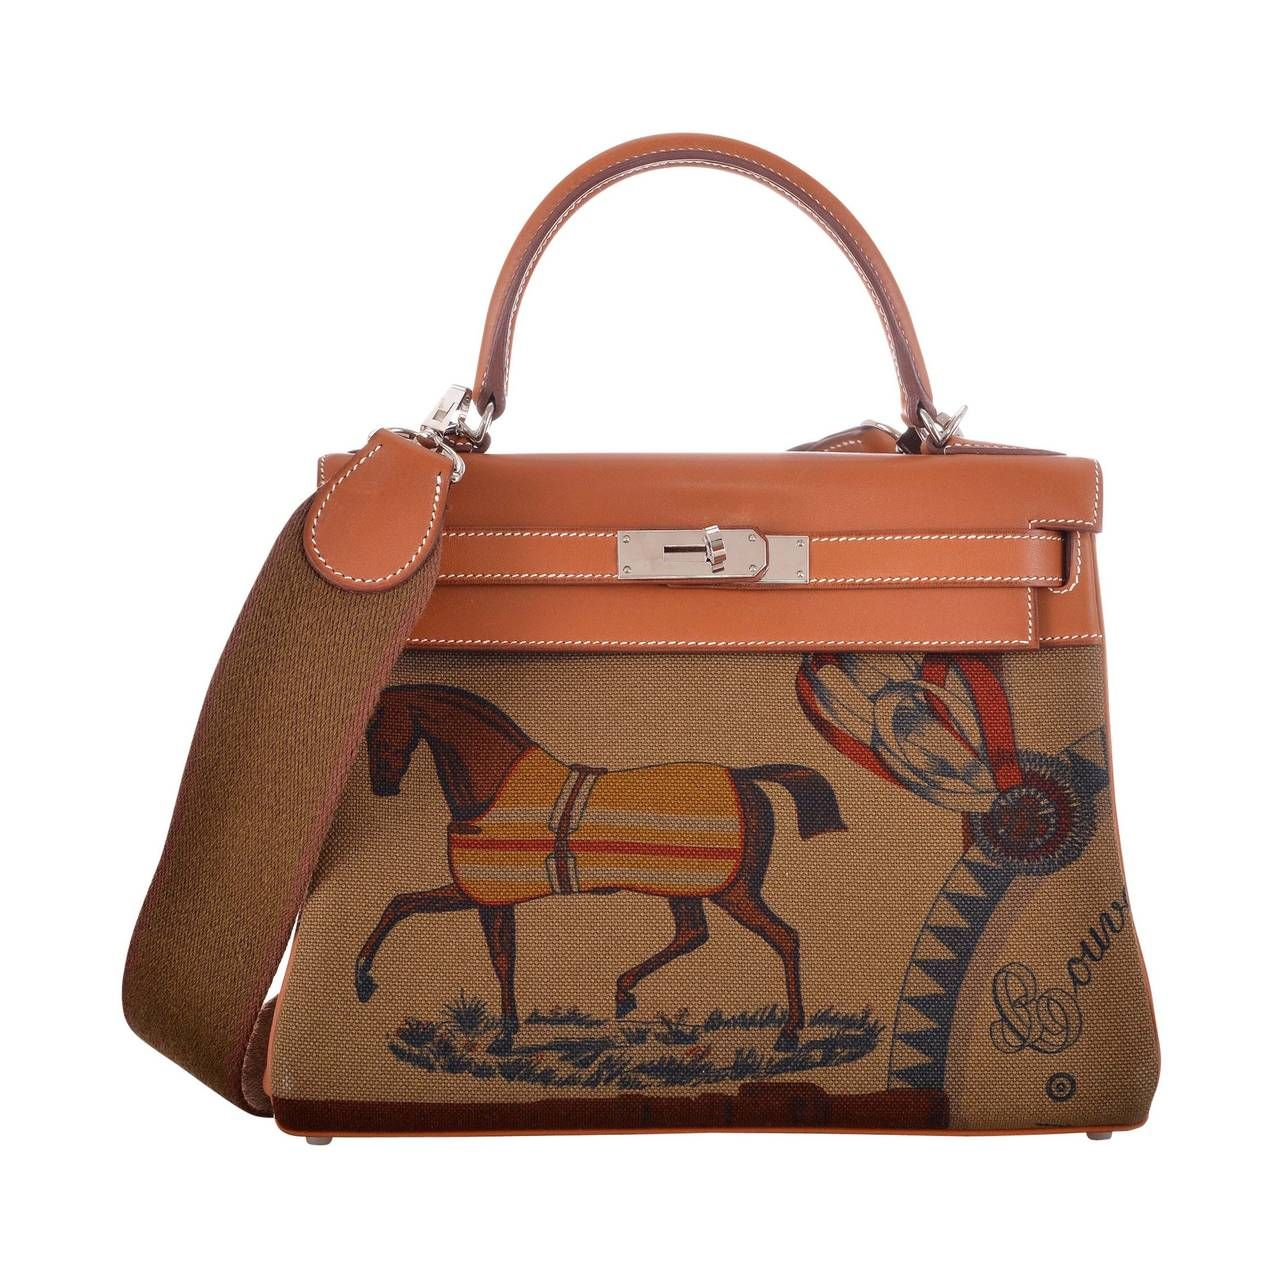 3d83e6ec6f HERMES KELLY BAG 28CM AMAZONE BARENIA / TOILE HORSE PRINT JaneFinds | From  a collection of